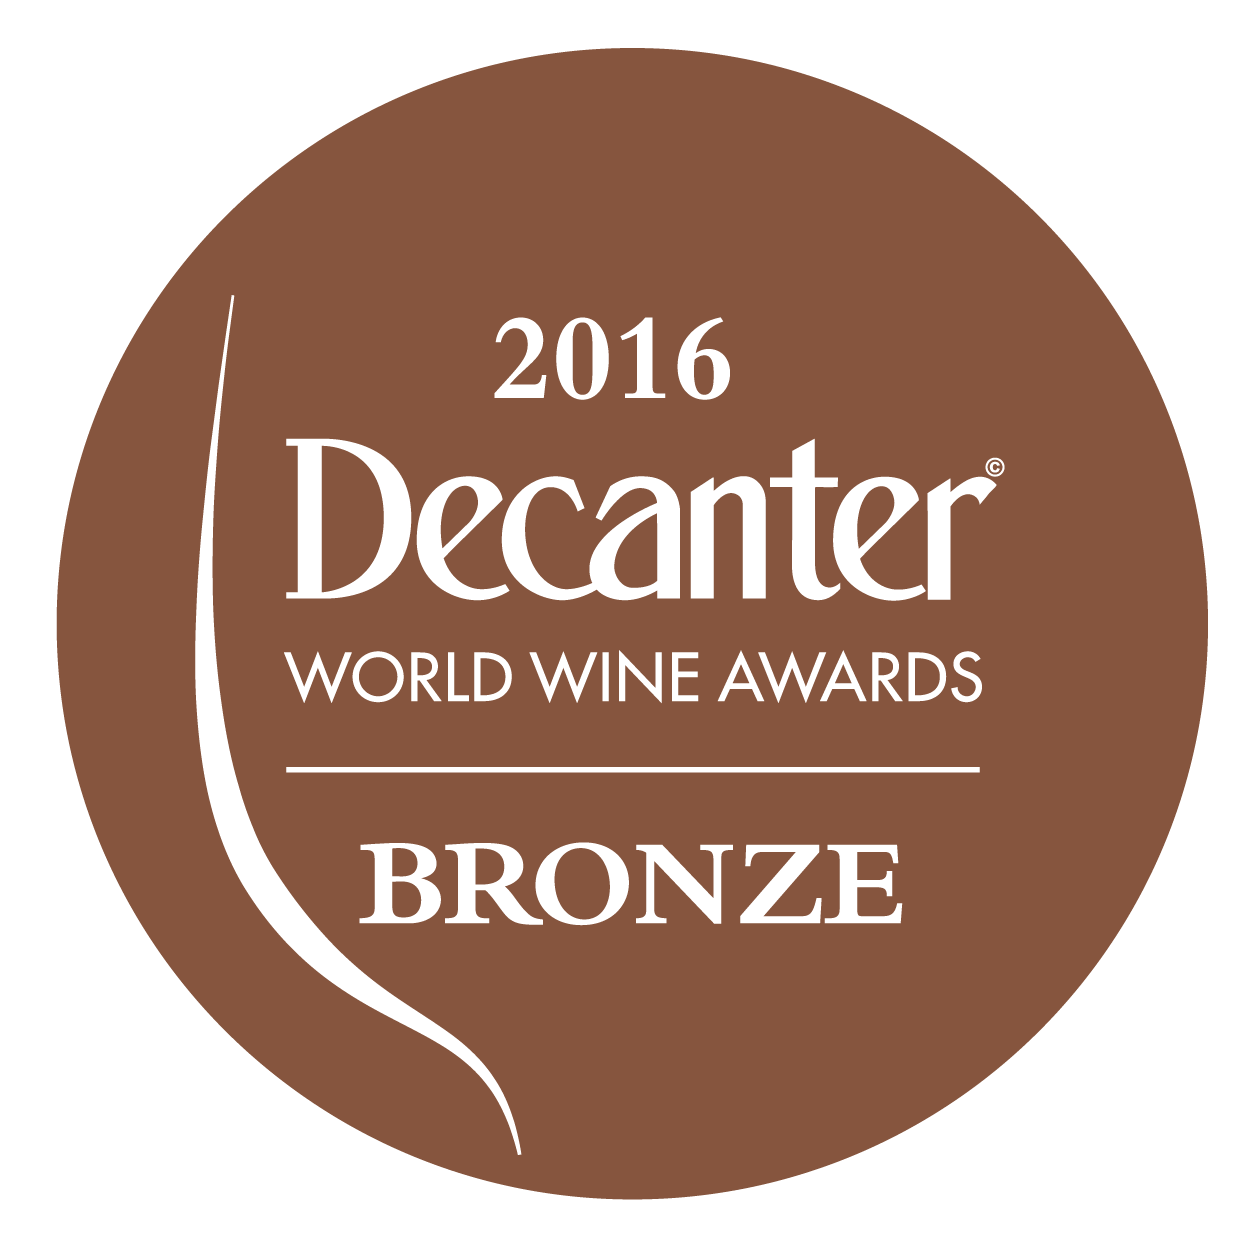 Decanter Bronze 2016